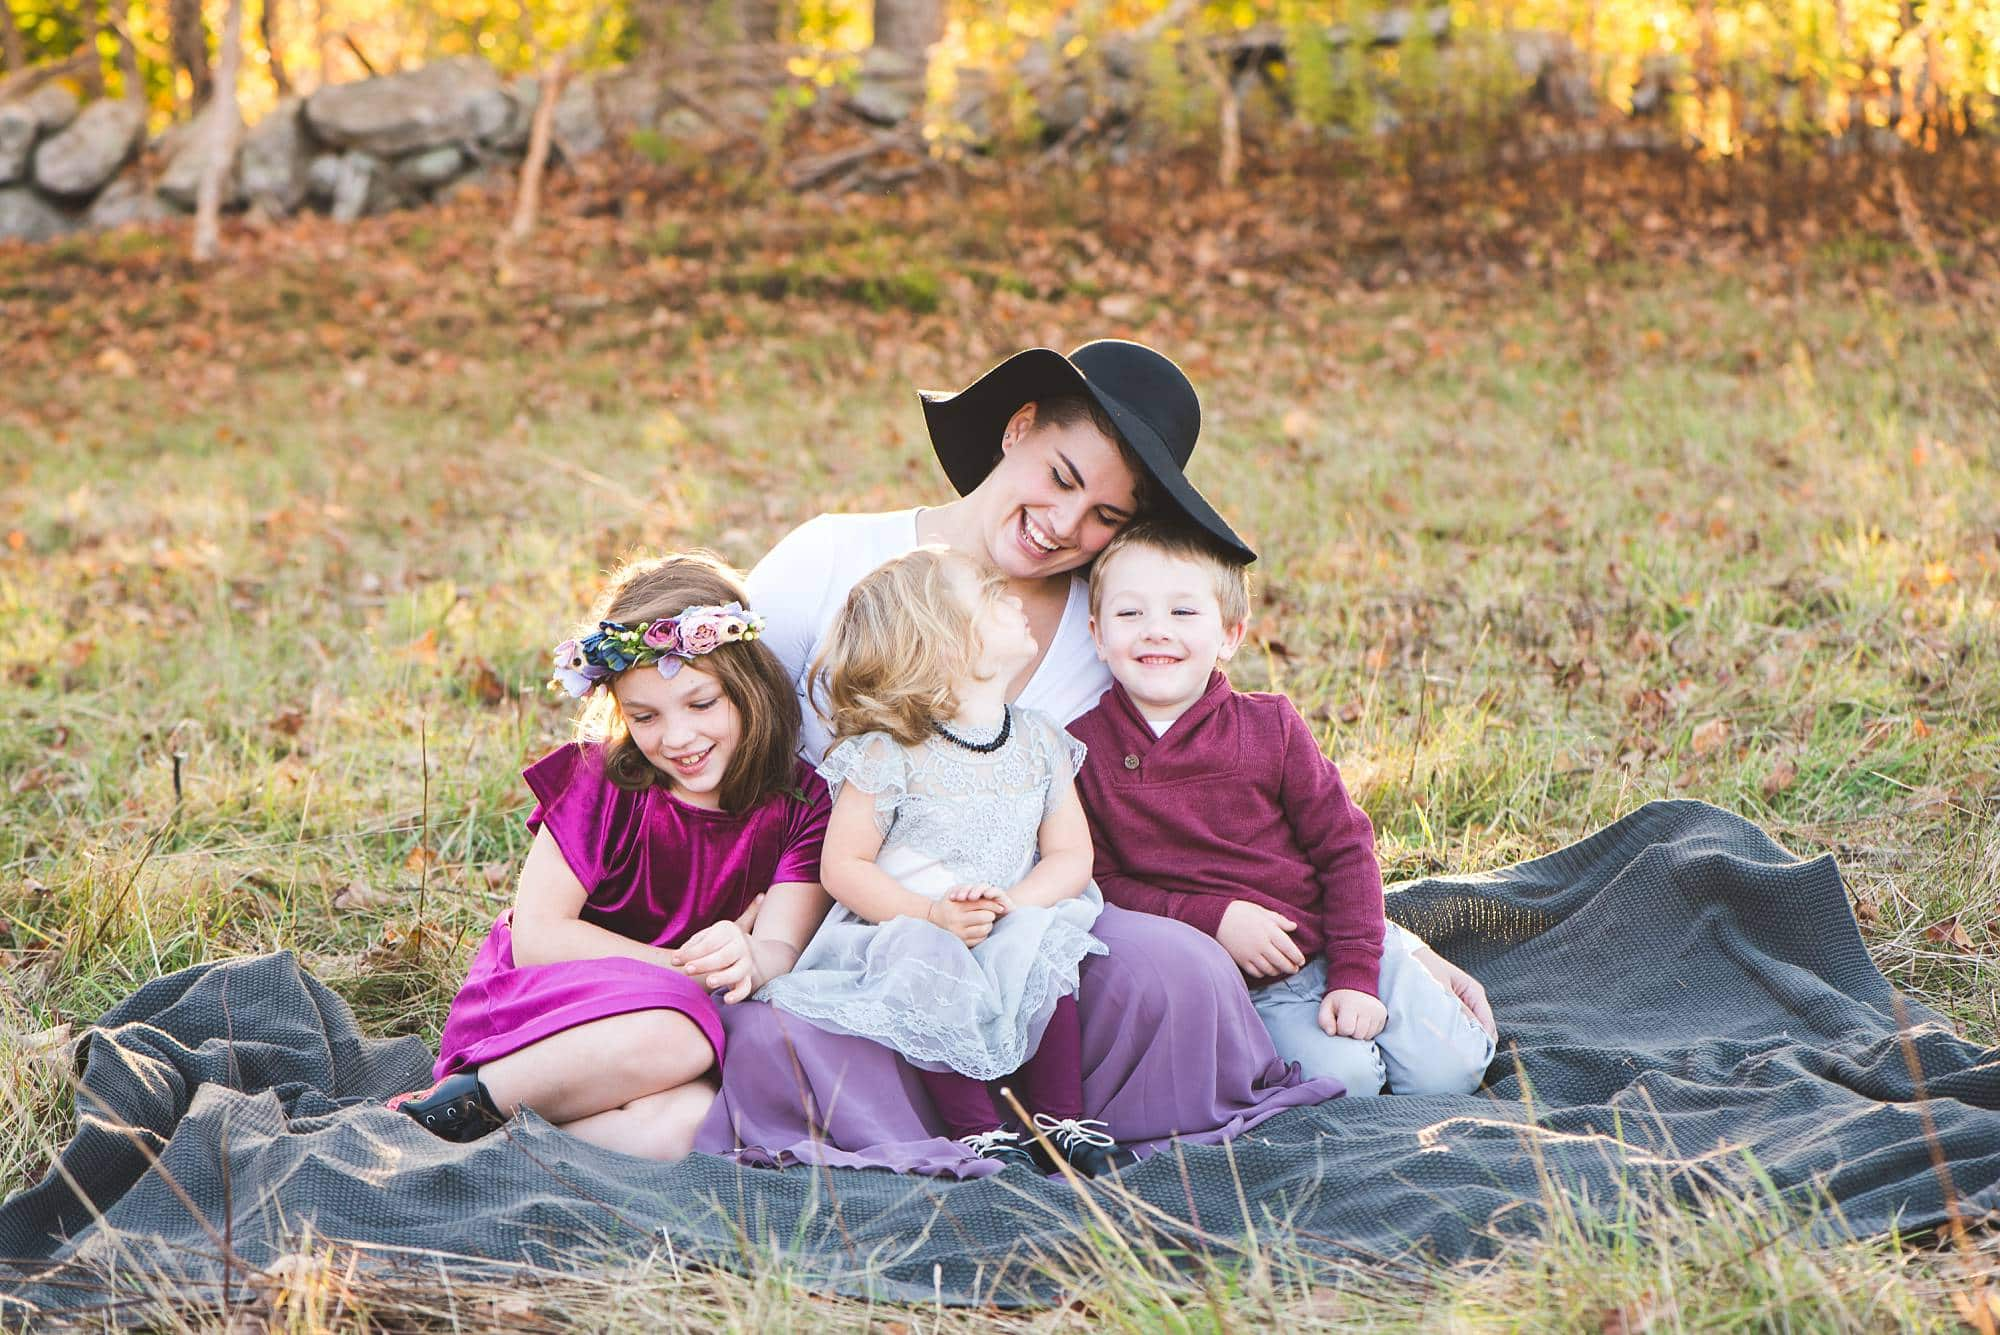 Mom snuggling with 3 kids on a blanket in a field